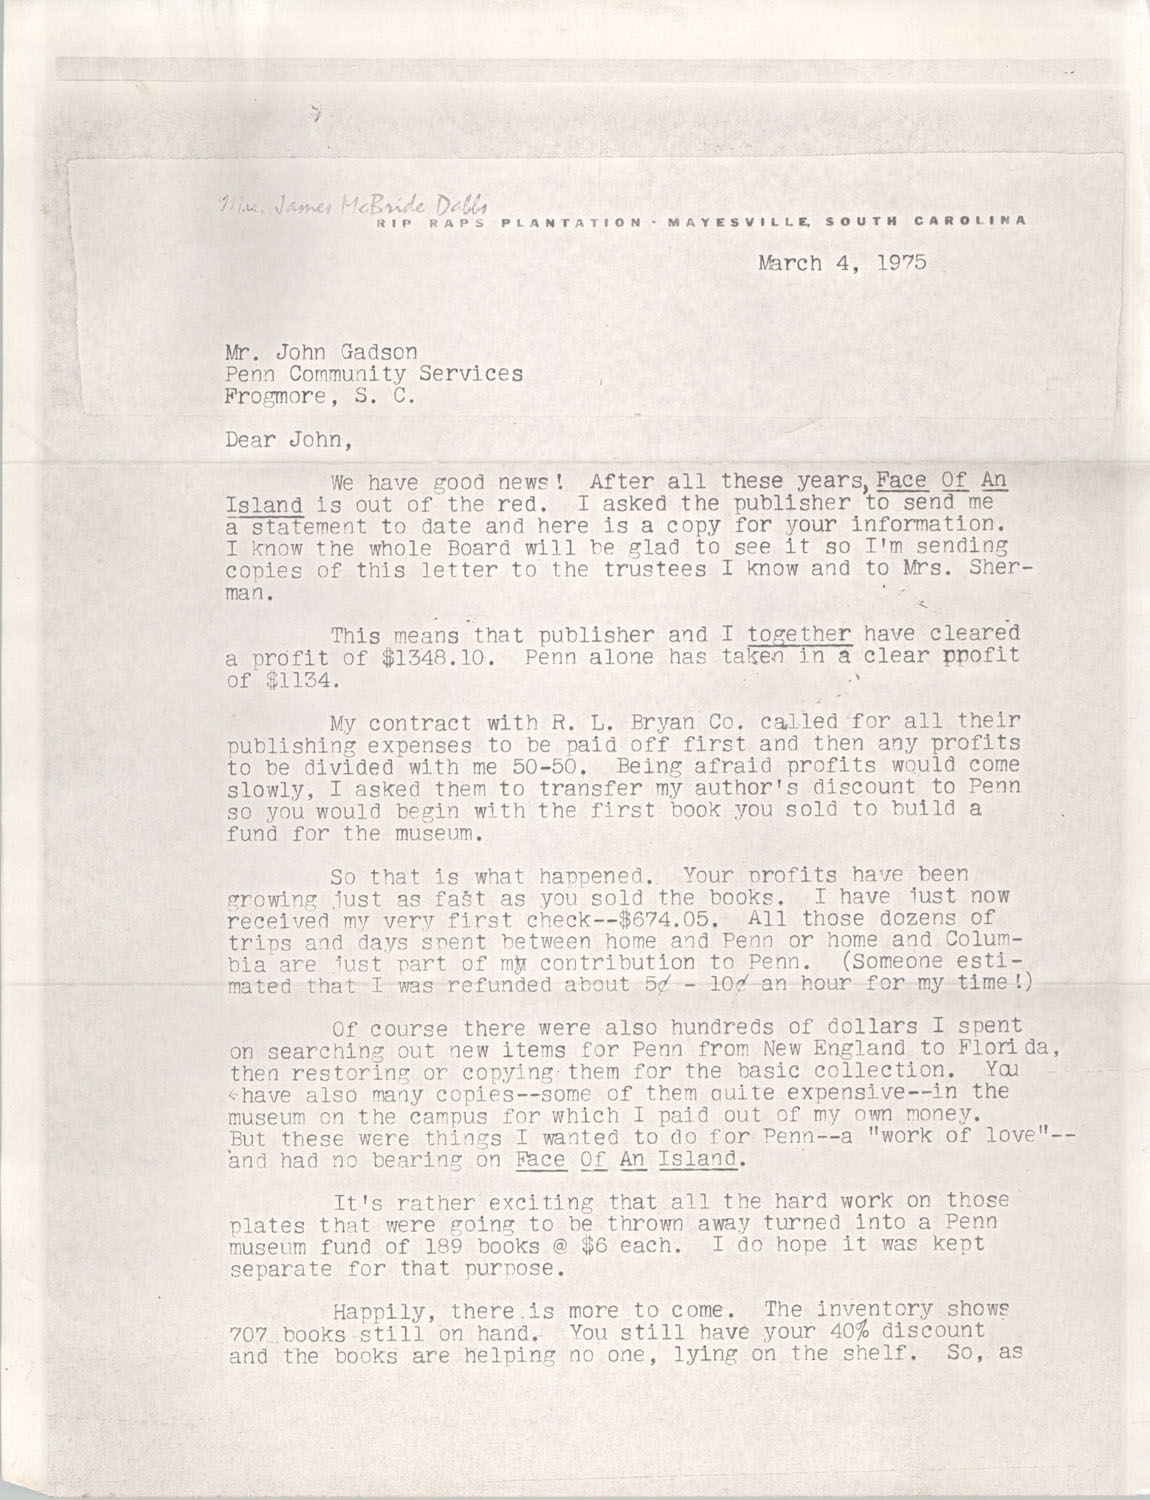 Letter from Edith M. Dabbs to John Gadson, March 4, 1975